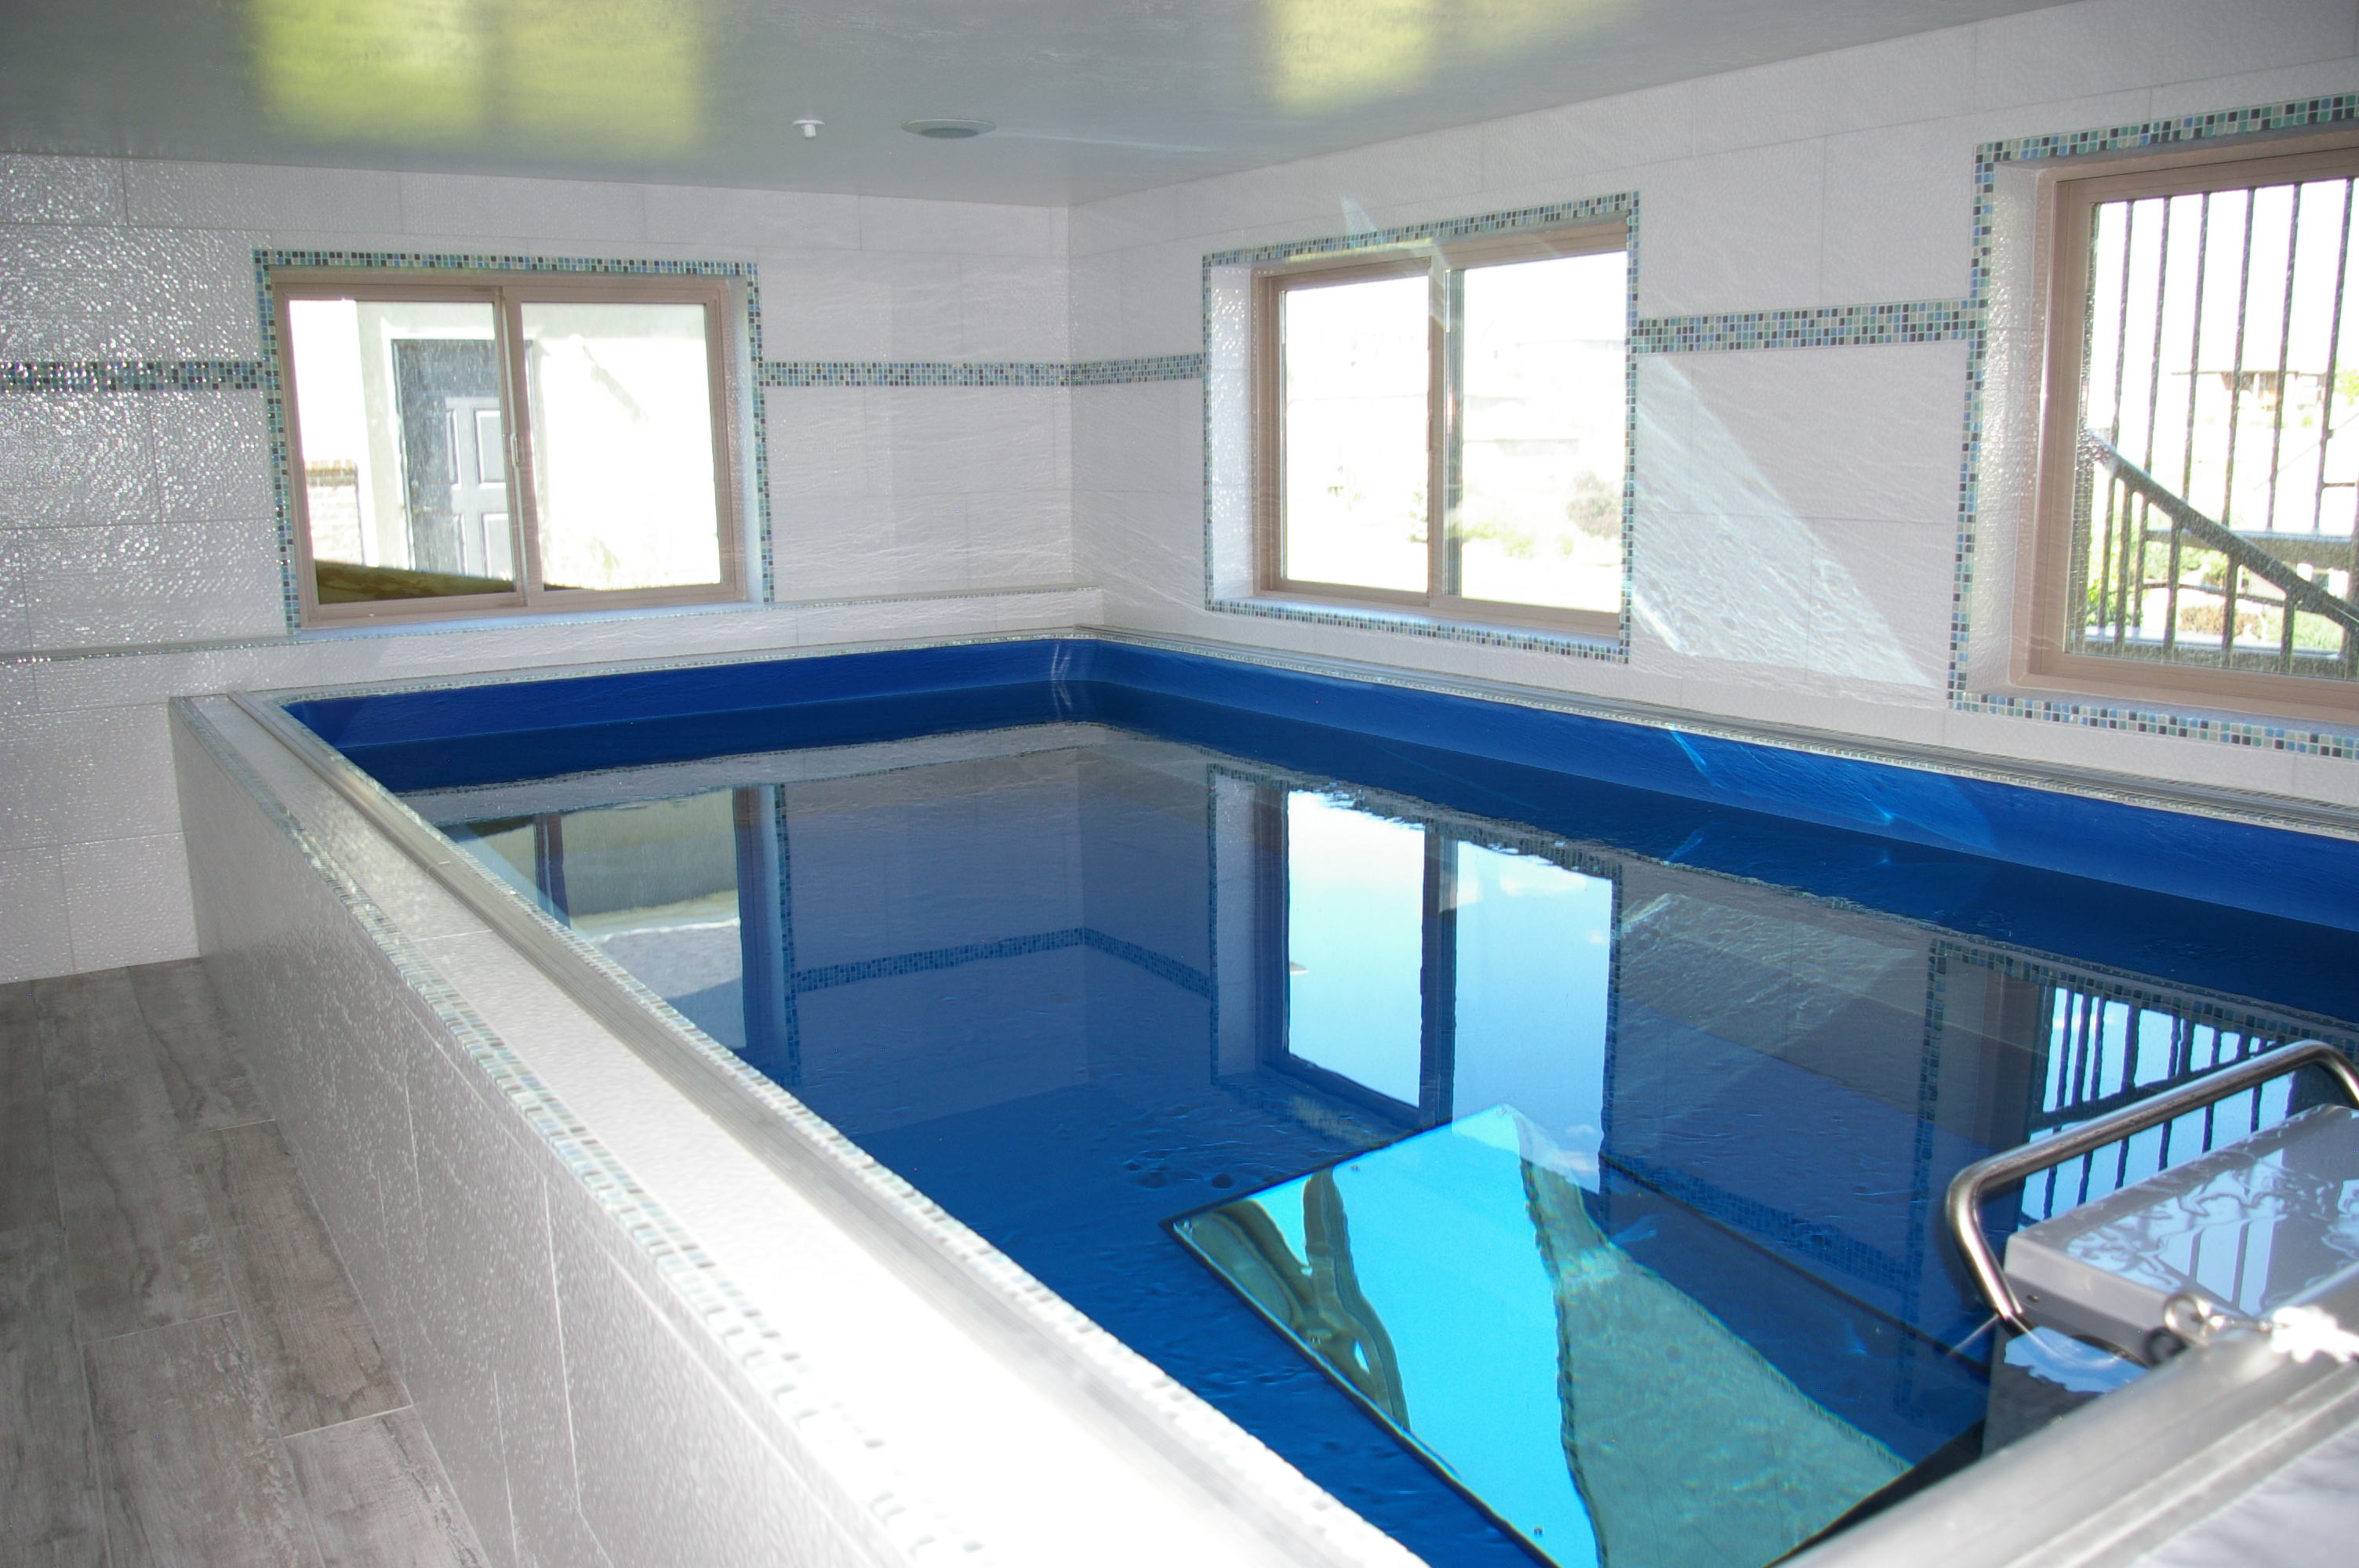 Indoor swimming pools indoor pools interior pools for Interior swimming pool